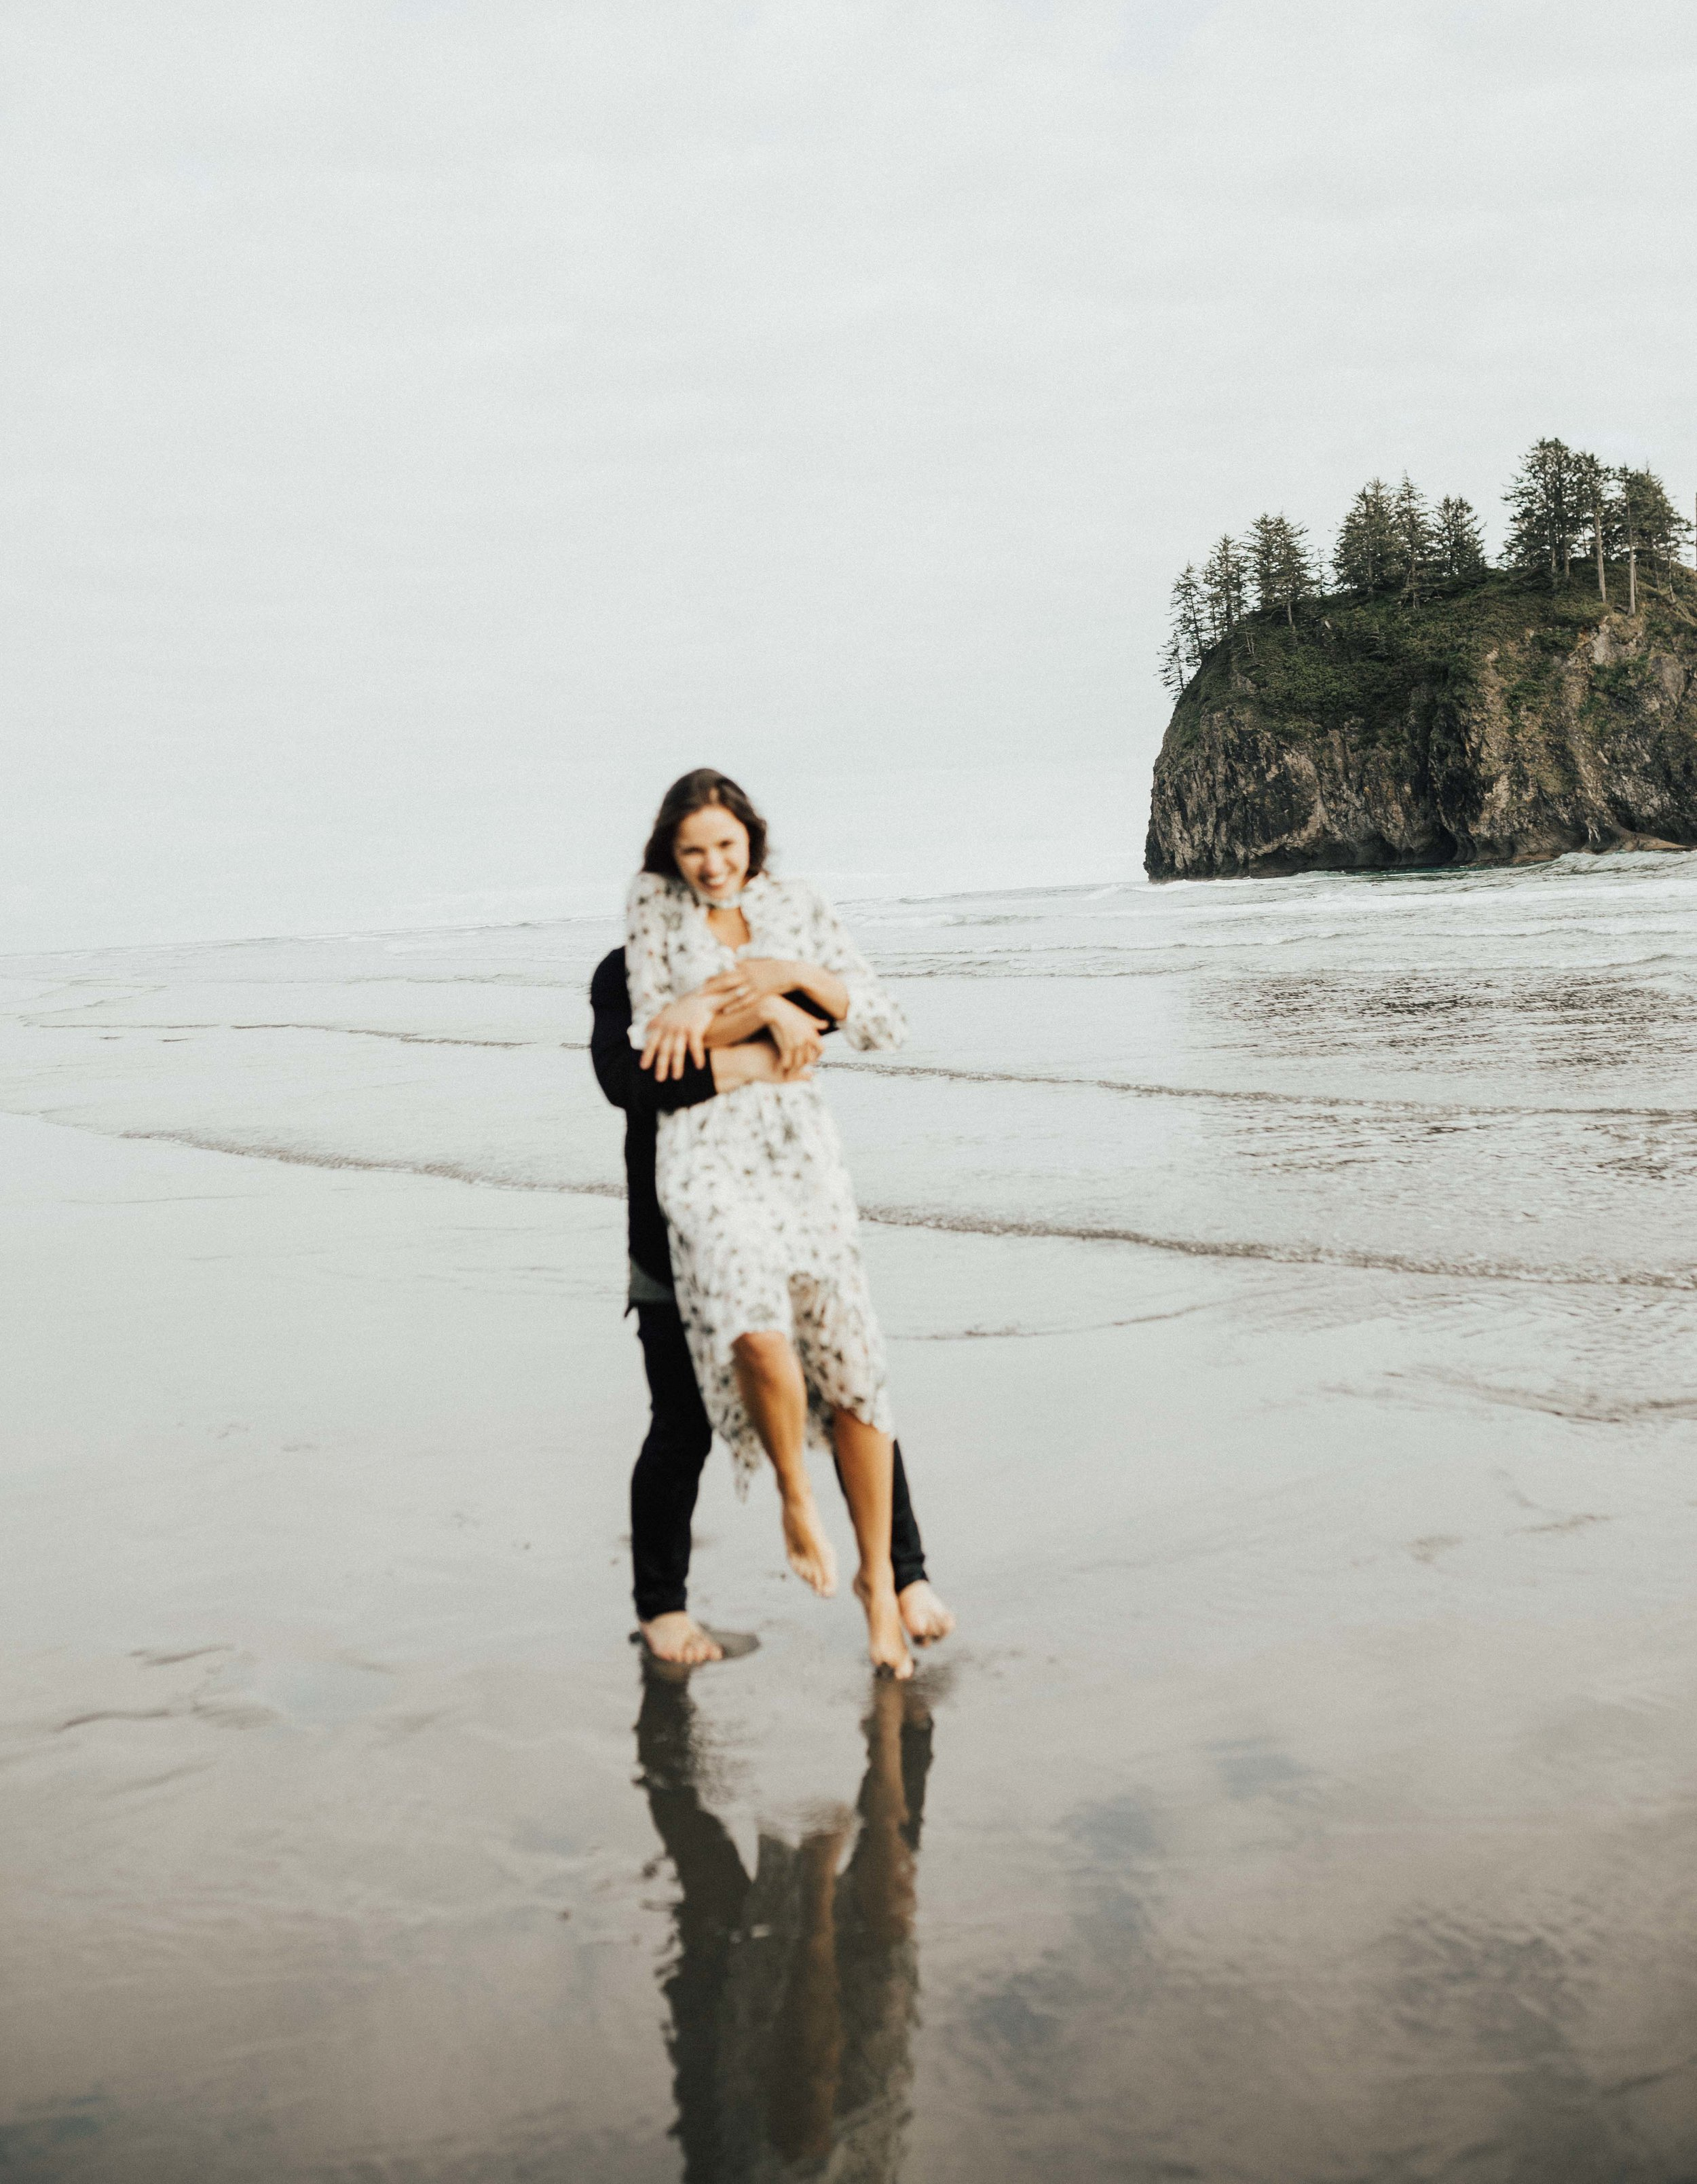 La Push Beach_Washinton_Dawn McClannan Photo-36.jpg